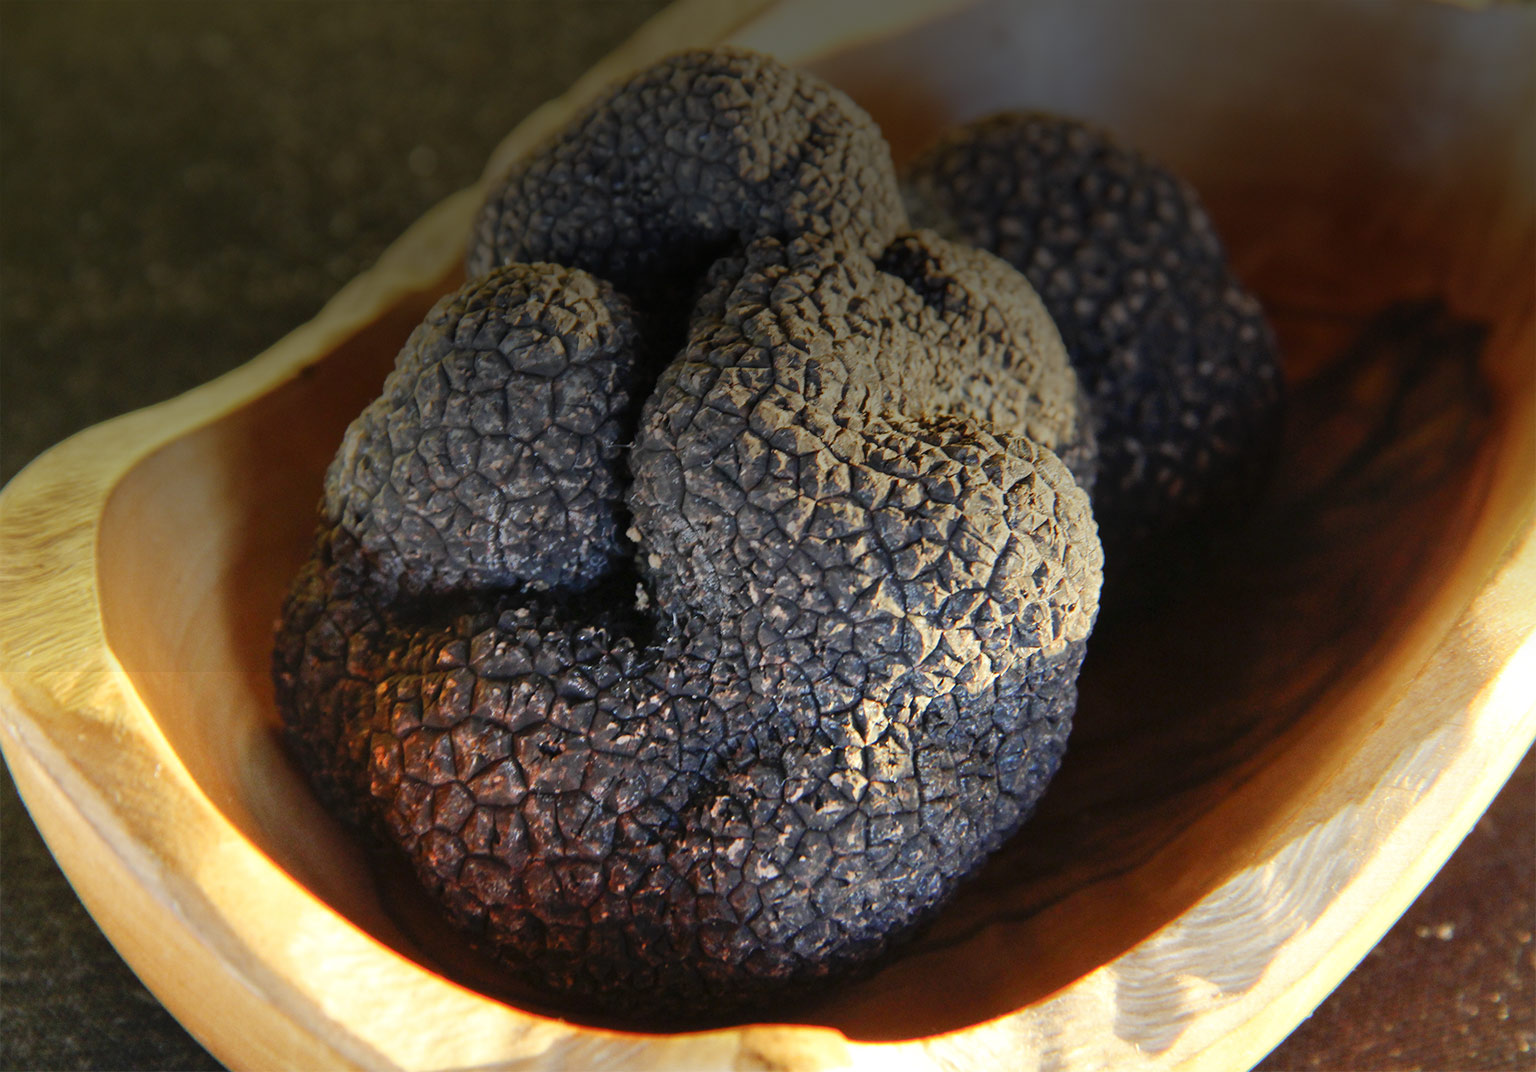 Truffles in a bowl (gallery slide)